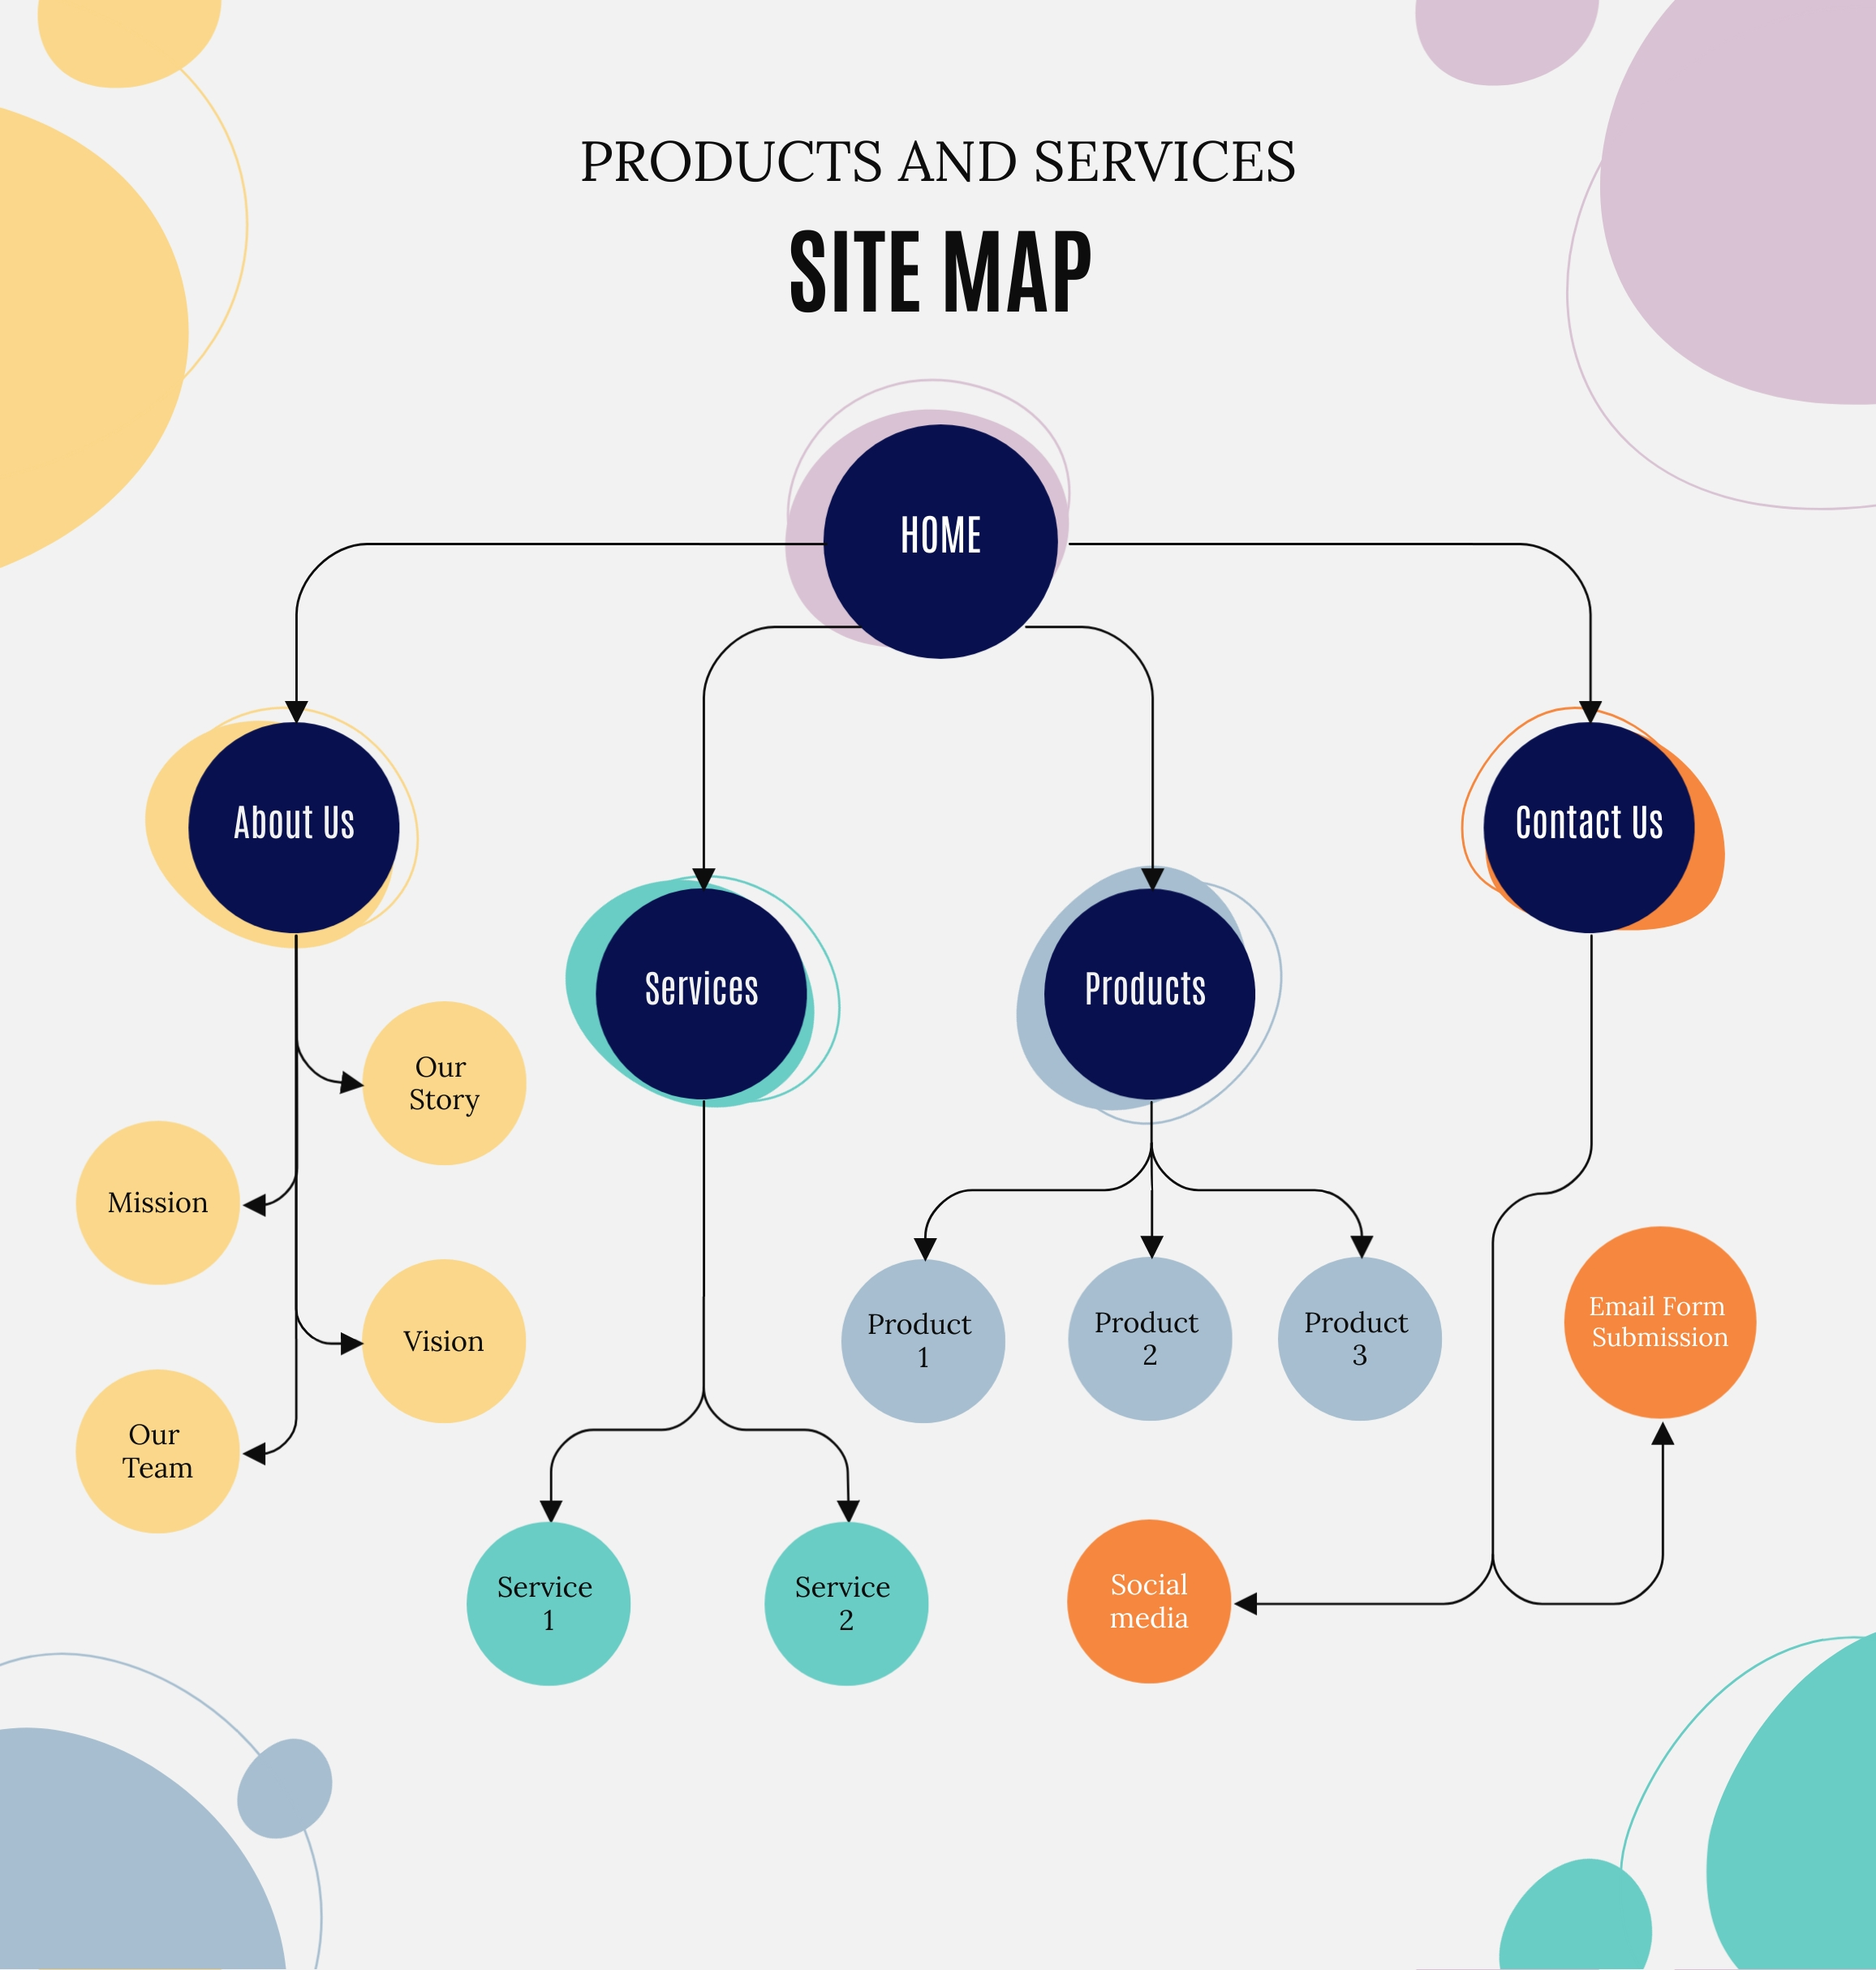 A site map flowchart template available in Visme.